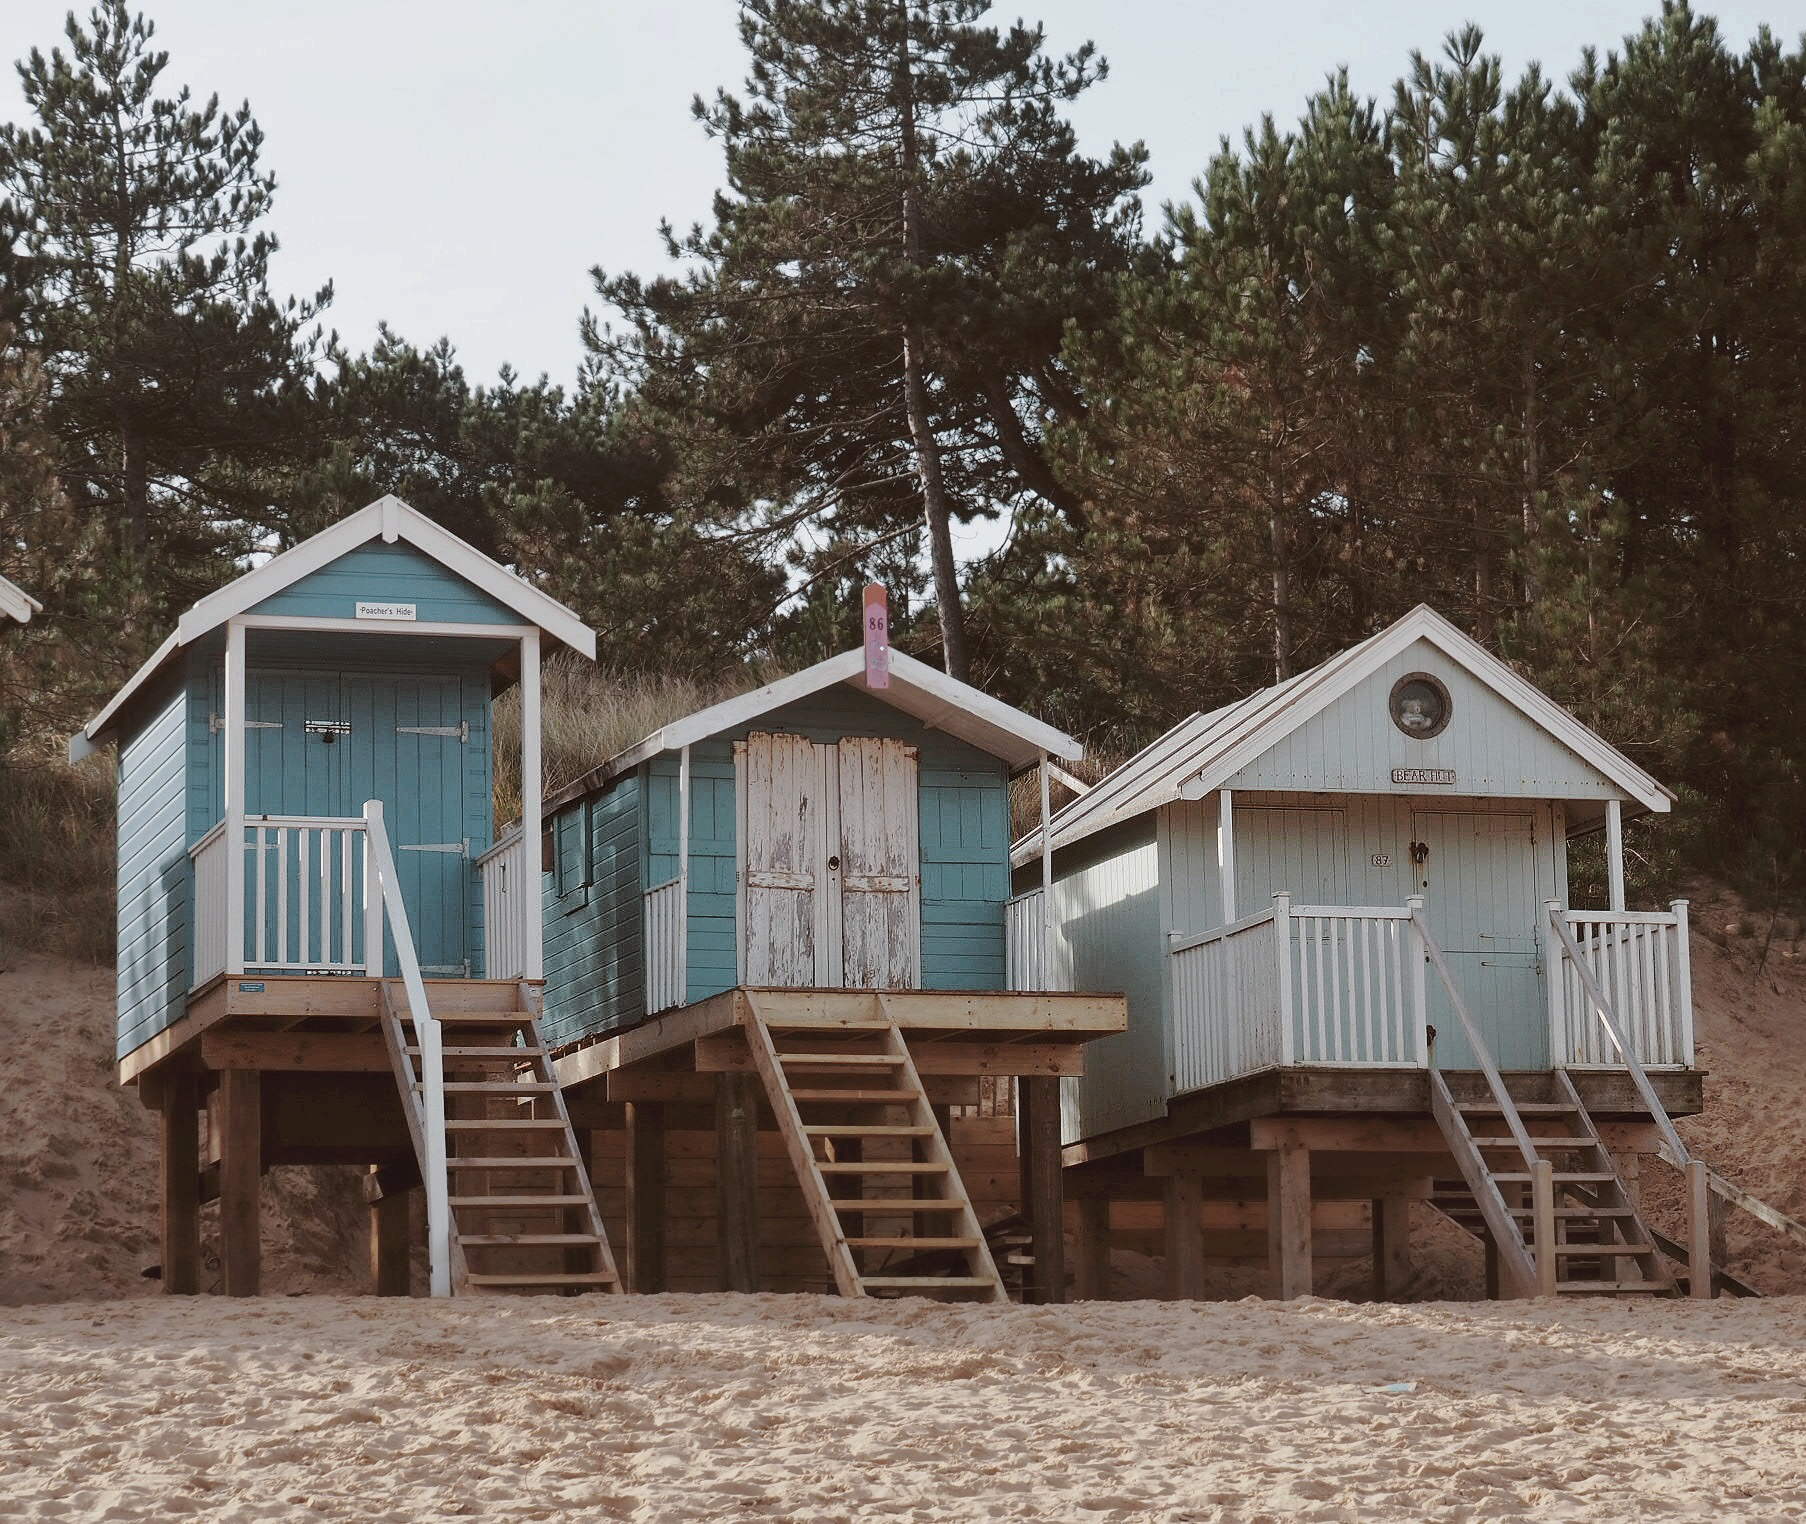 More of those perfect huts!